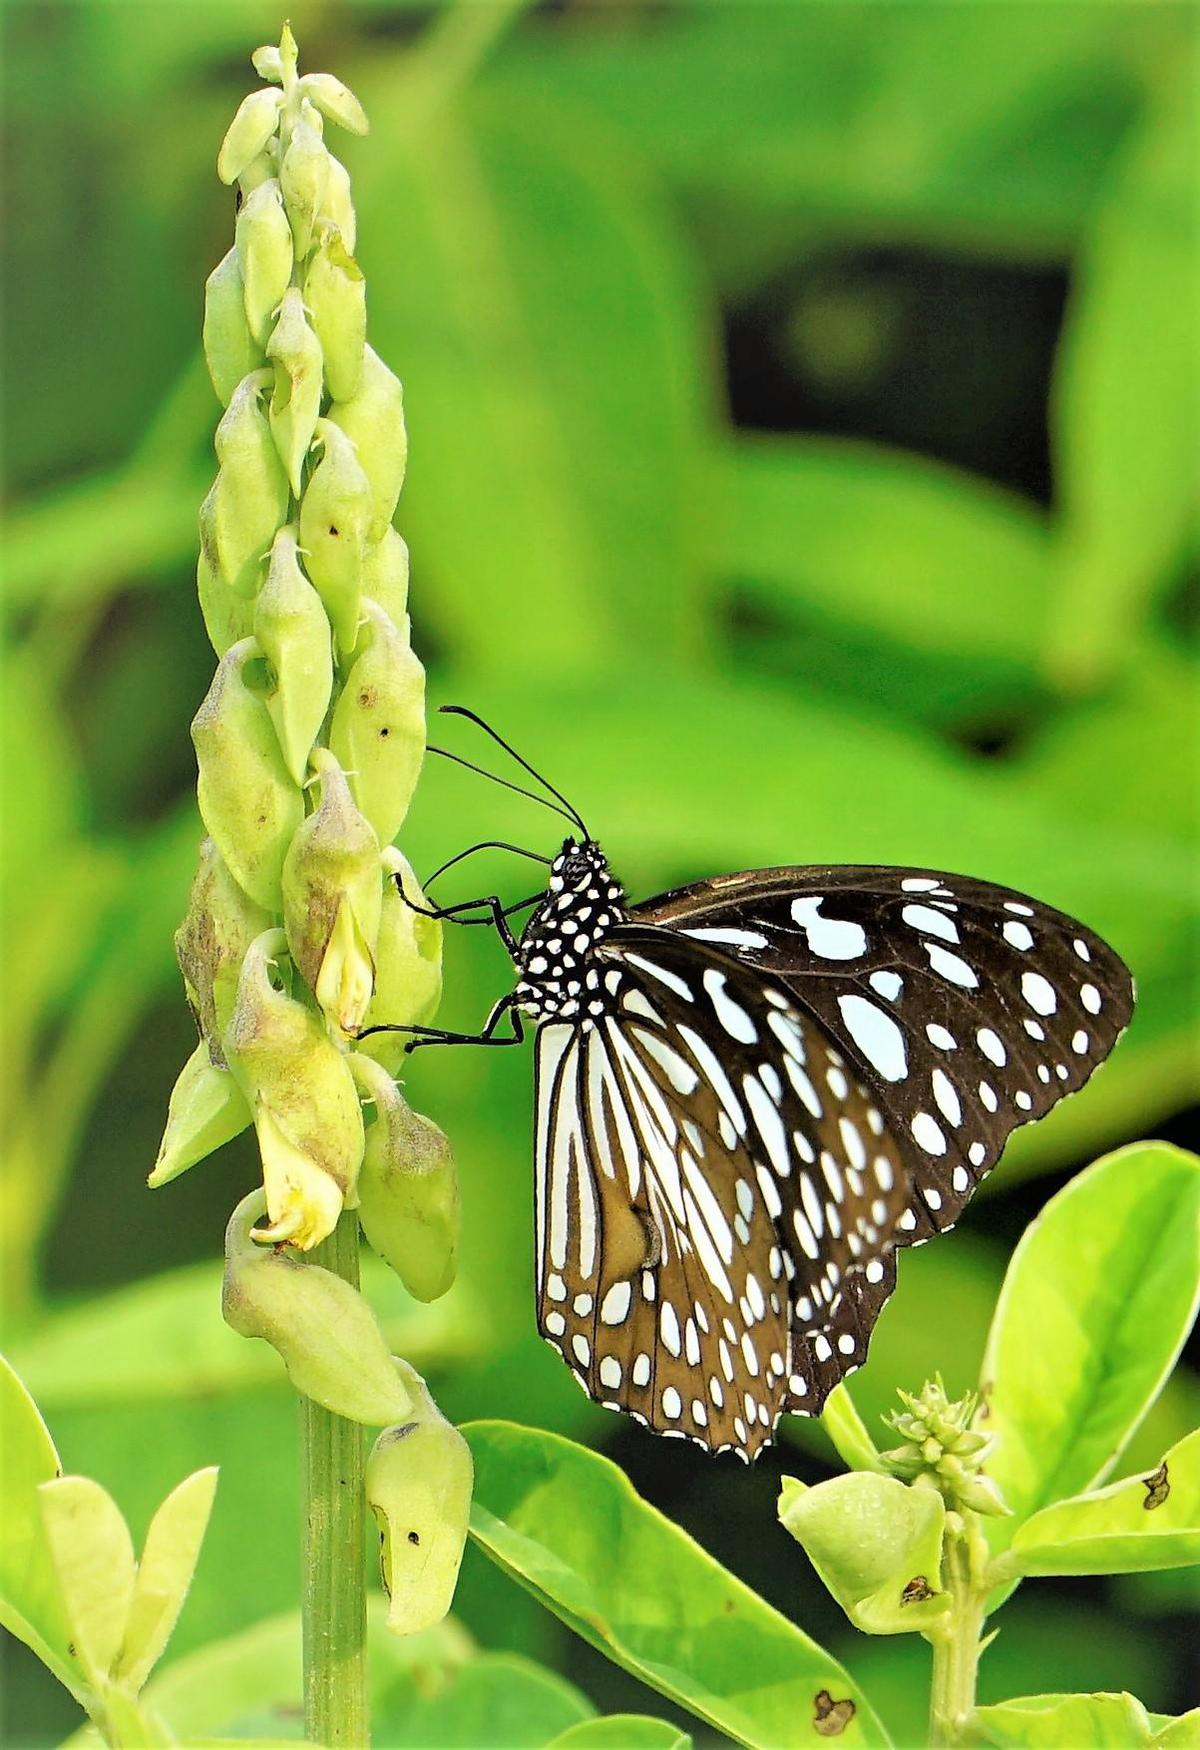 Image of Moths and butterflies, Butterfly, Insect, Brush-footed butterfly, Invertebrate, Pollinator etc.